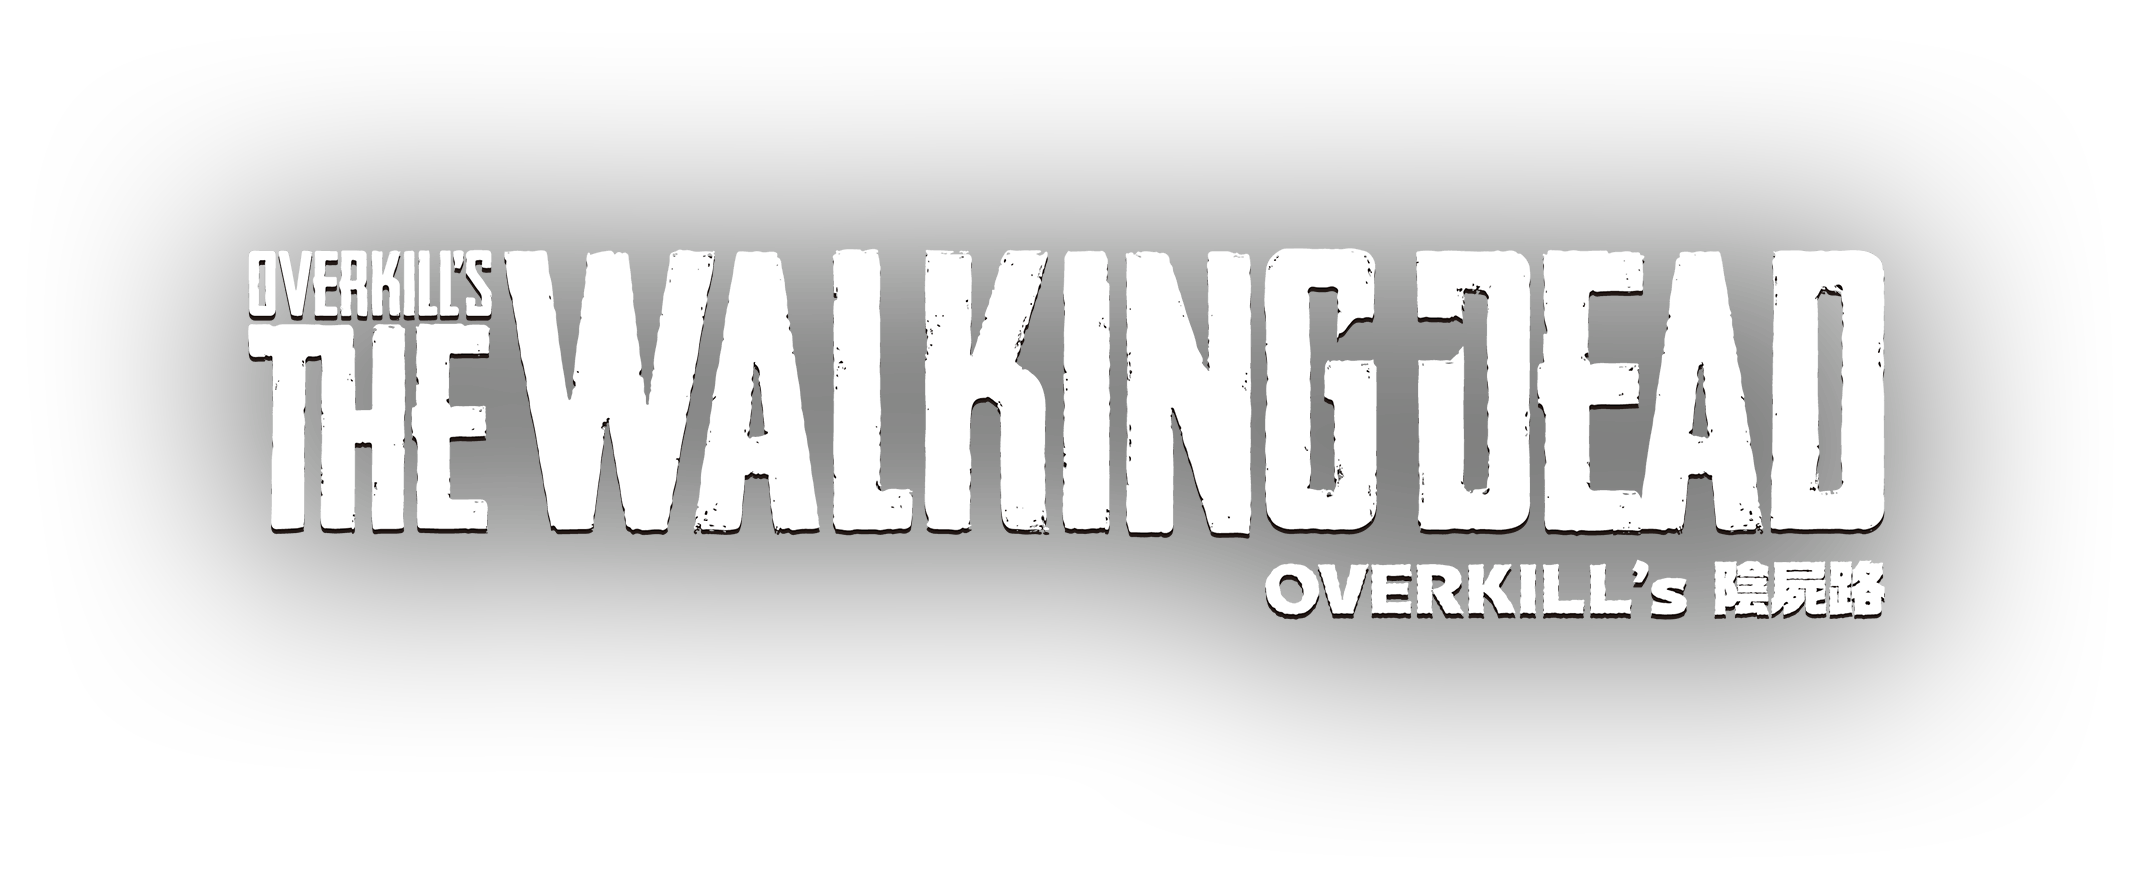 OVERKILL's THE WALKING DEAD|OVERKILL's 陰屍路